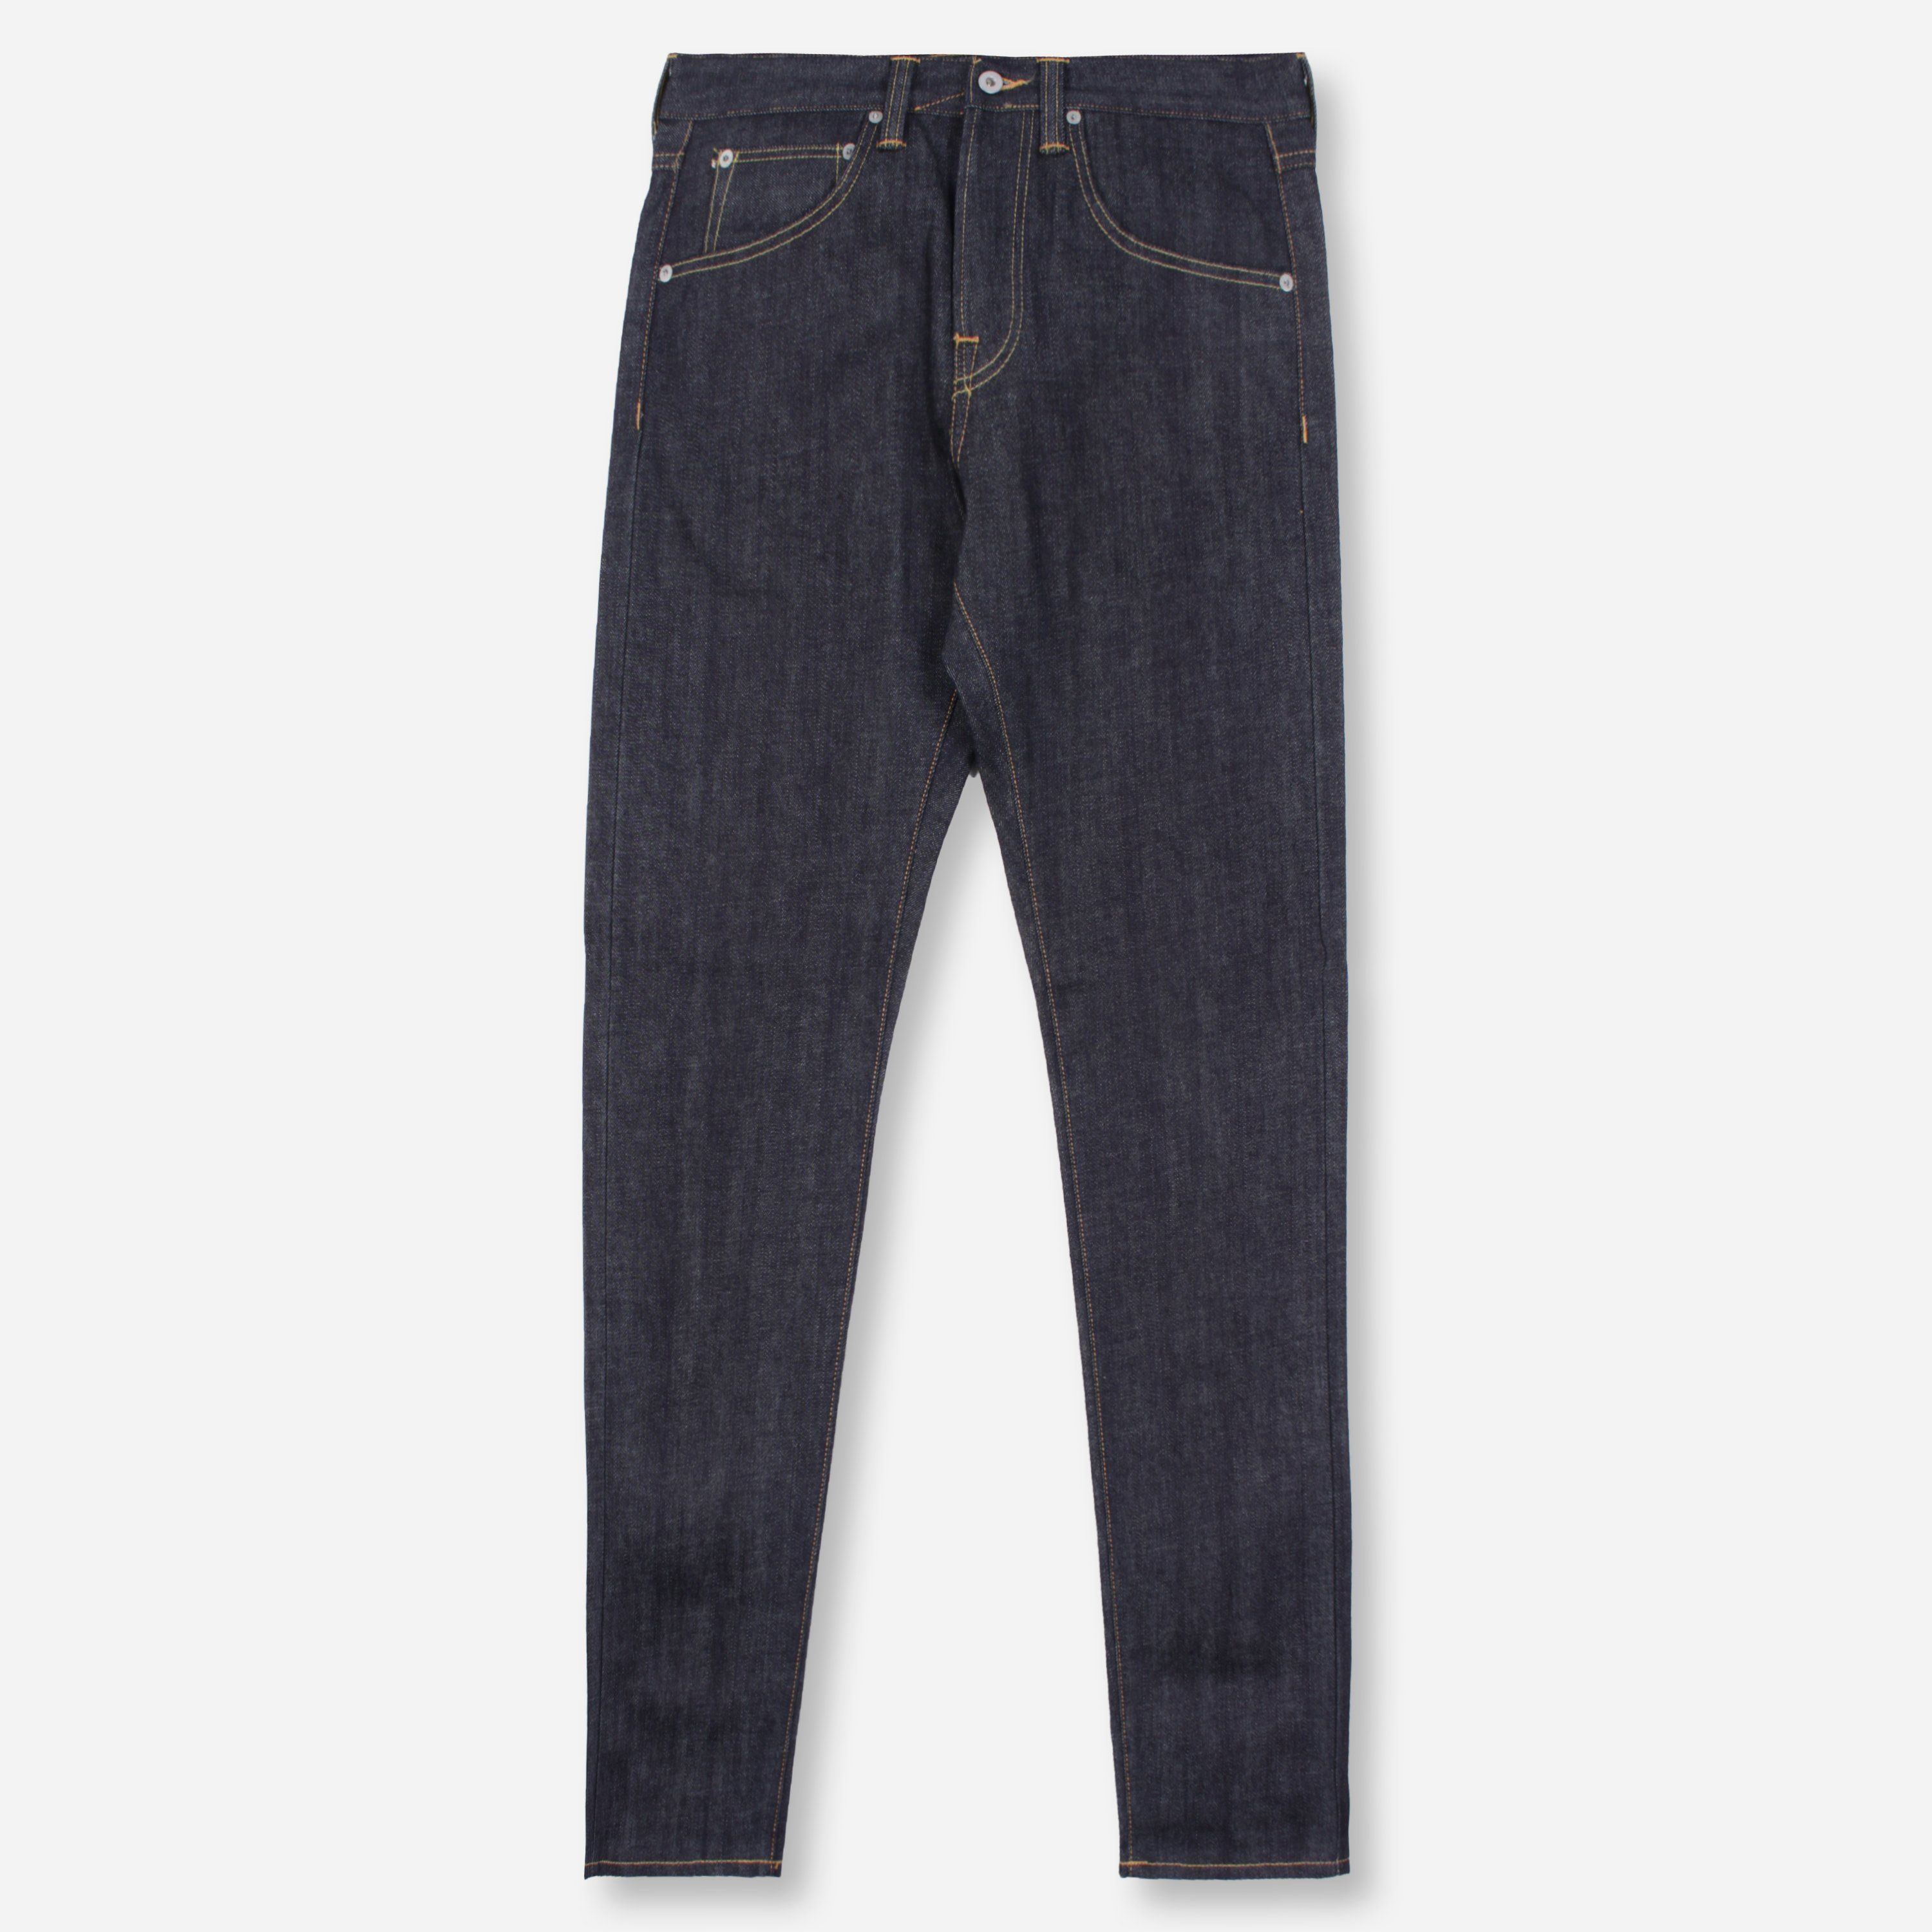 Edwin ED55 Regular Tapered Red Listed Selvage Denim Unwashed